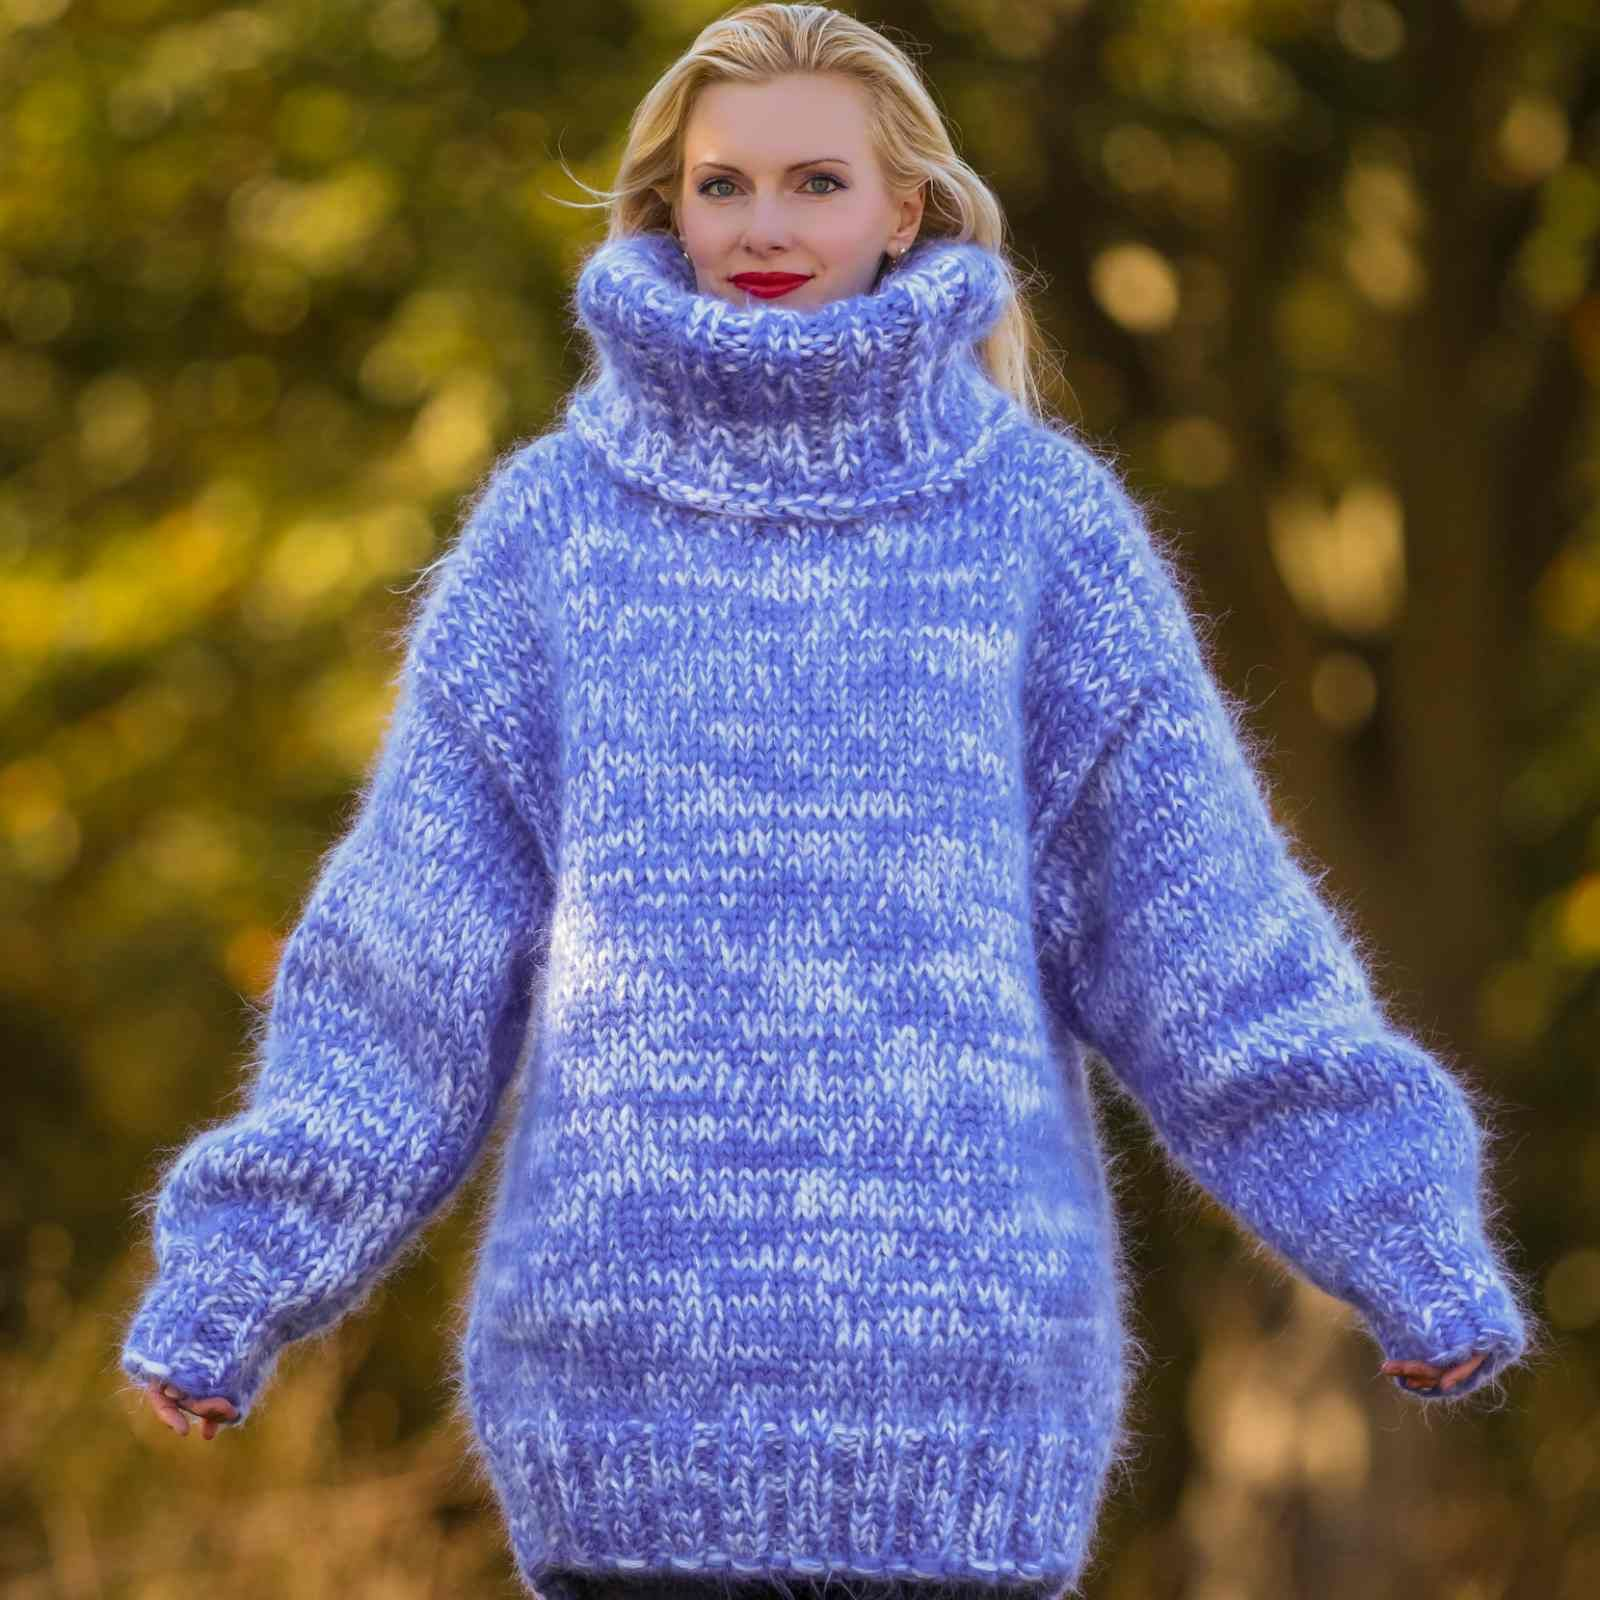 Big And Heavy Hand Knitted Sweater In Blue And White Size S M L